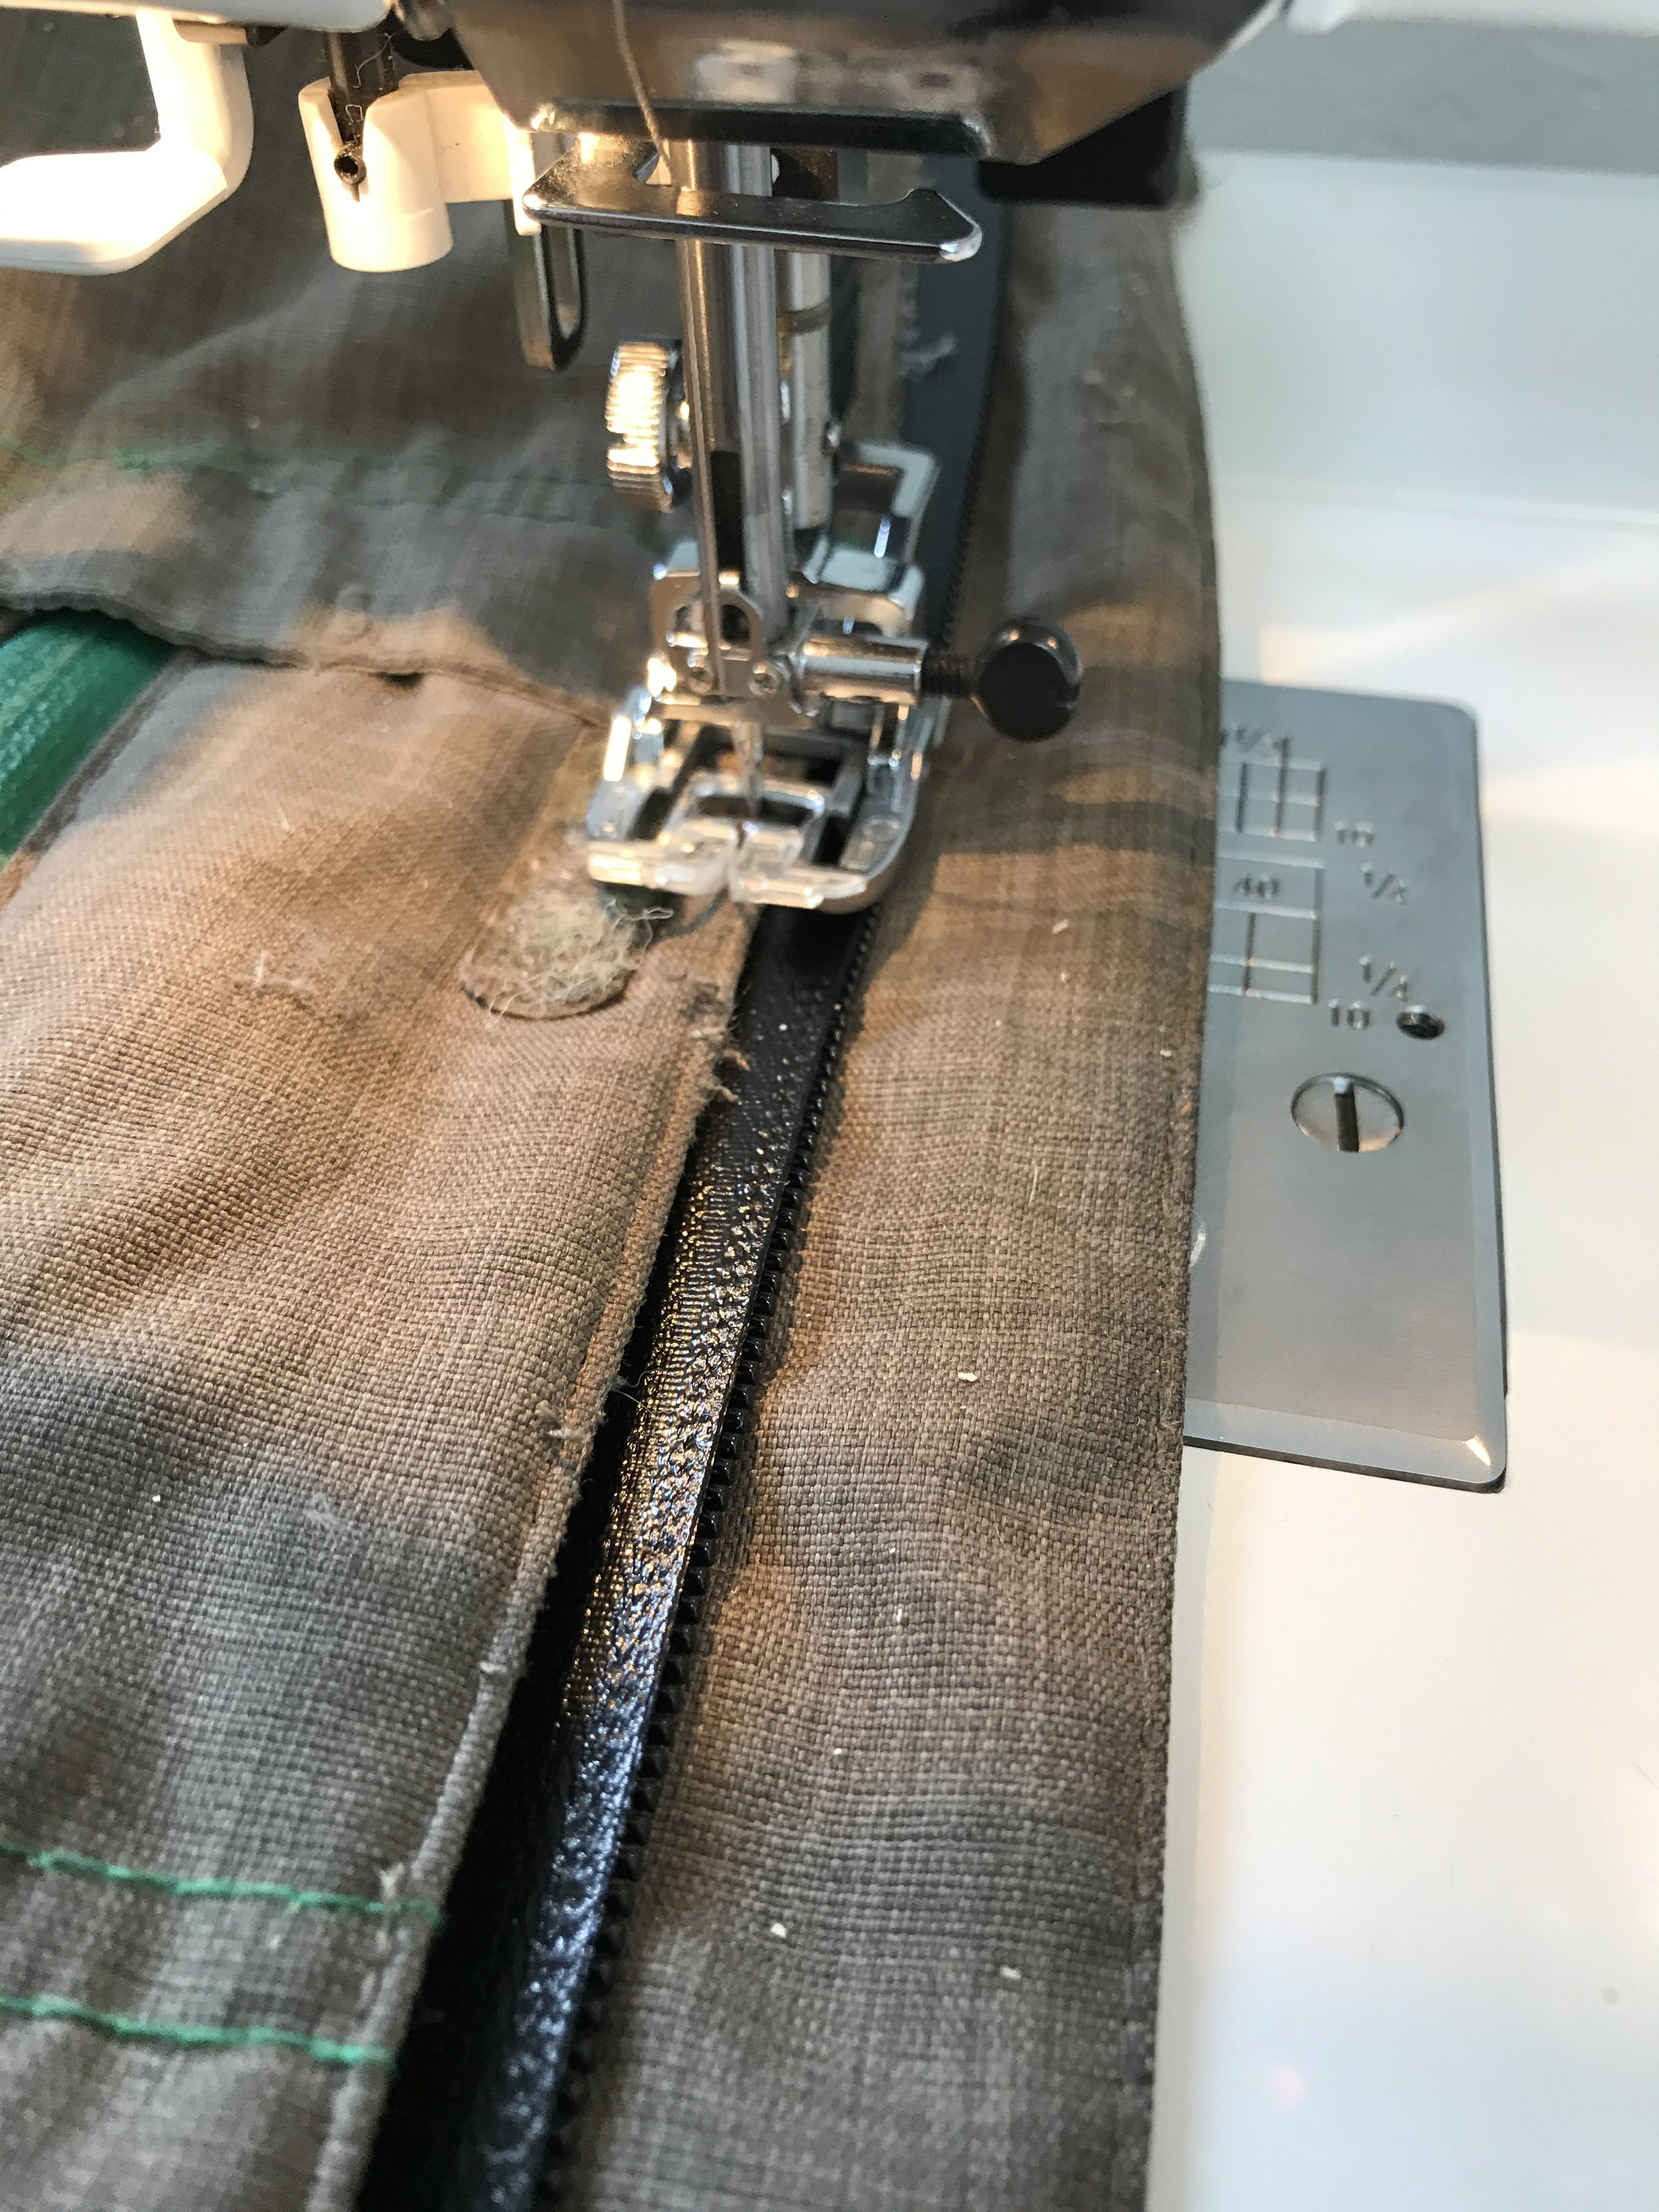 Want a water resistant zipper in place of your standard one? Let us know!